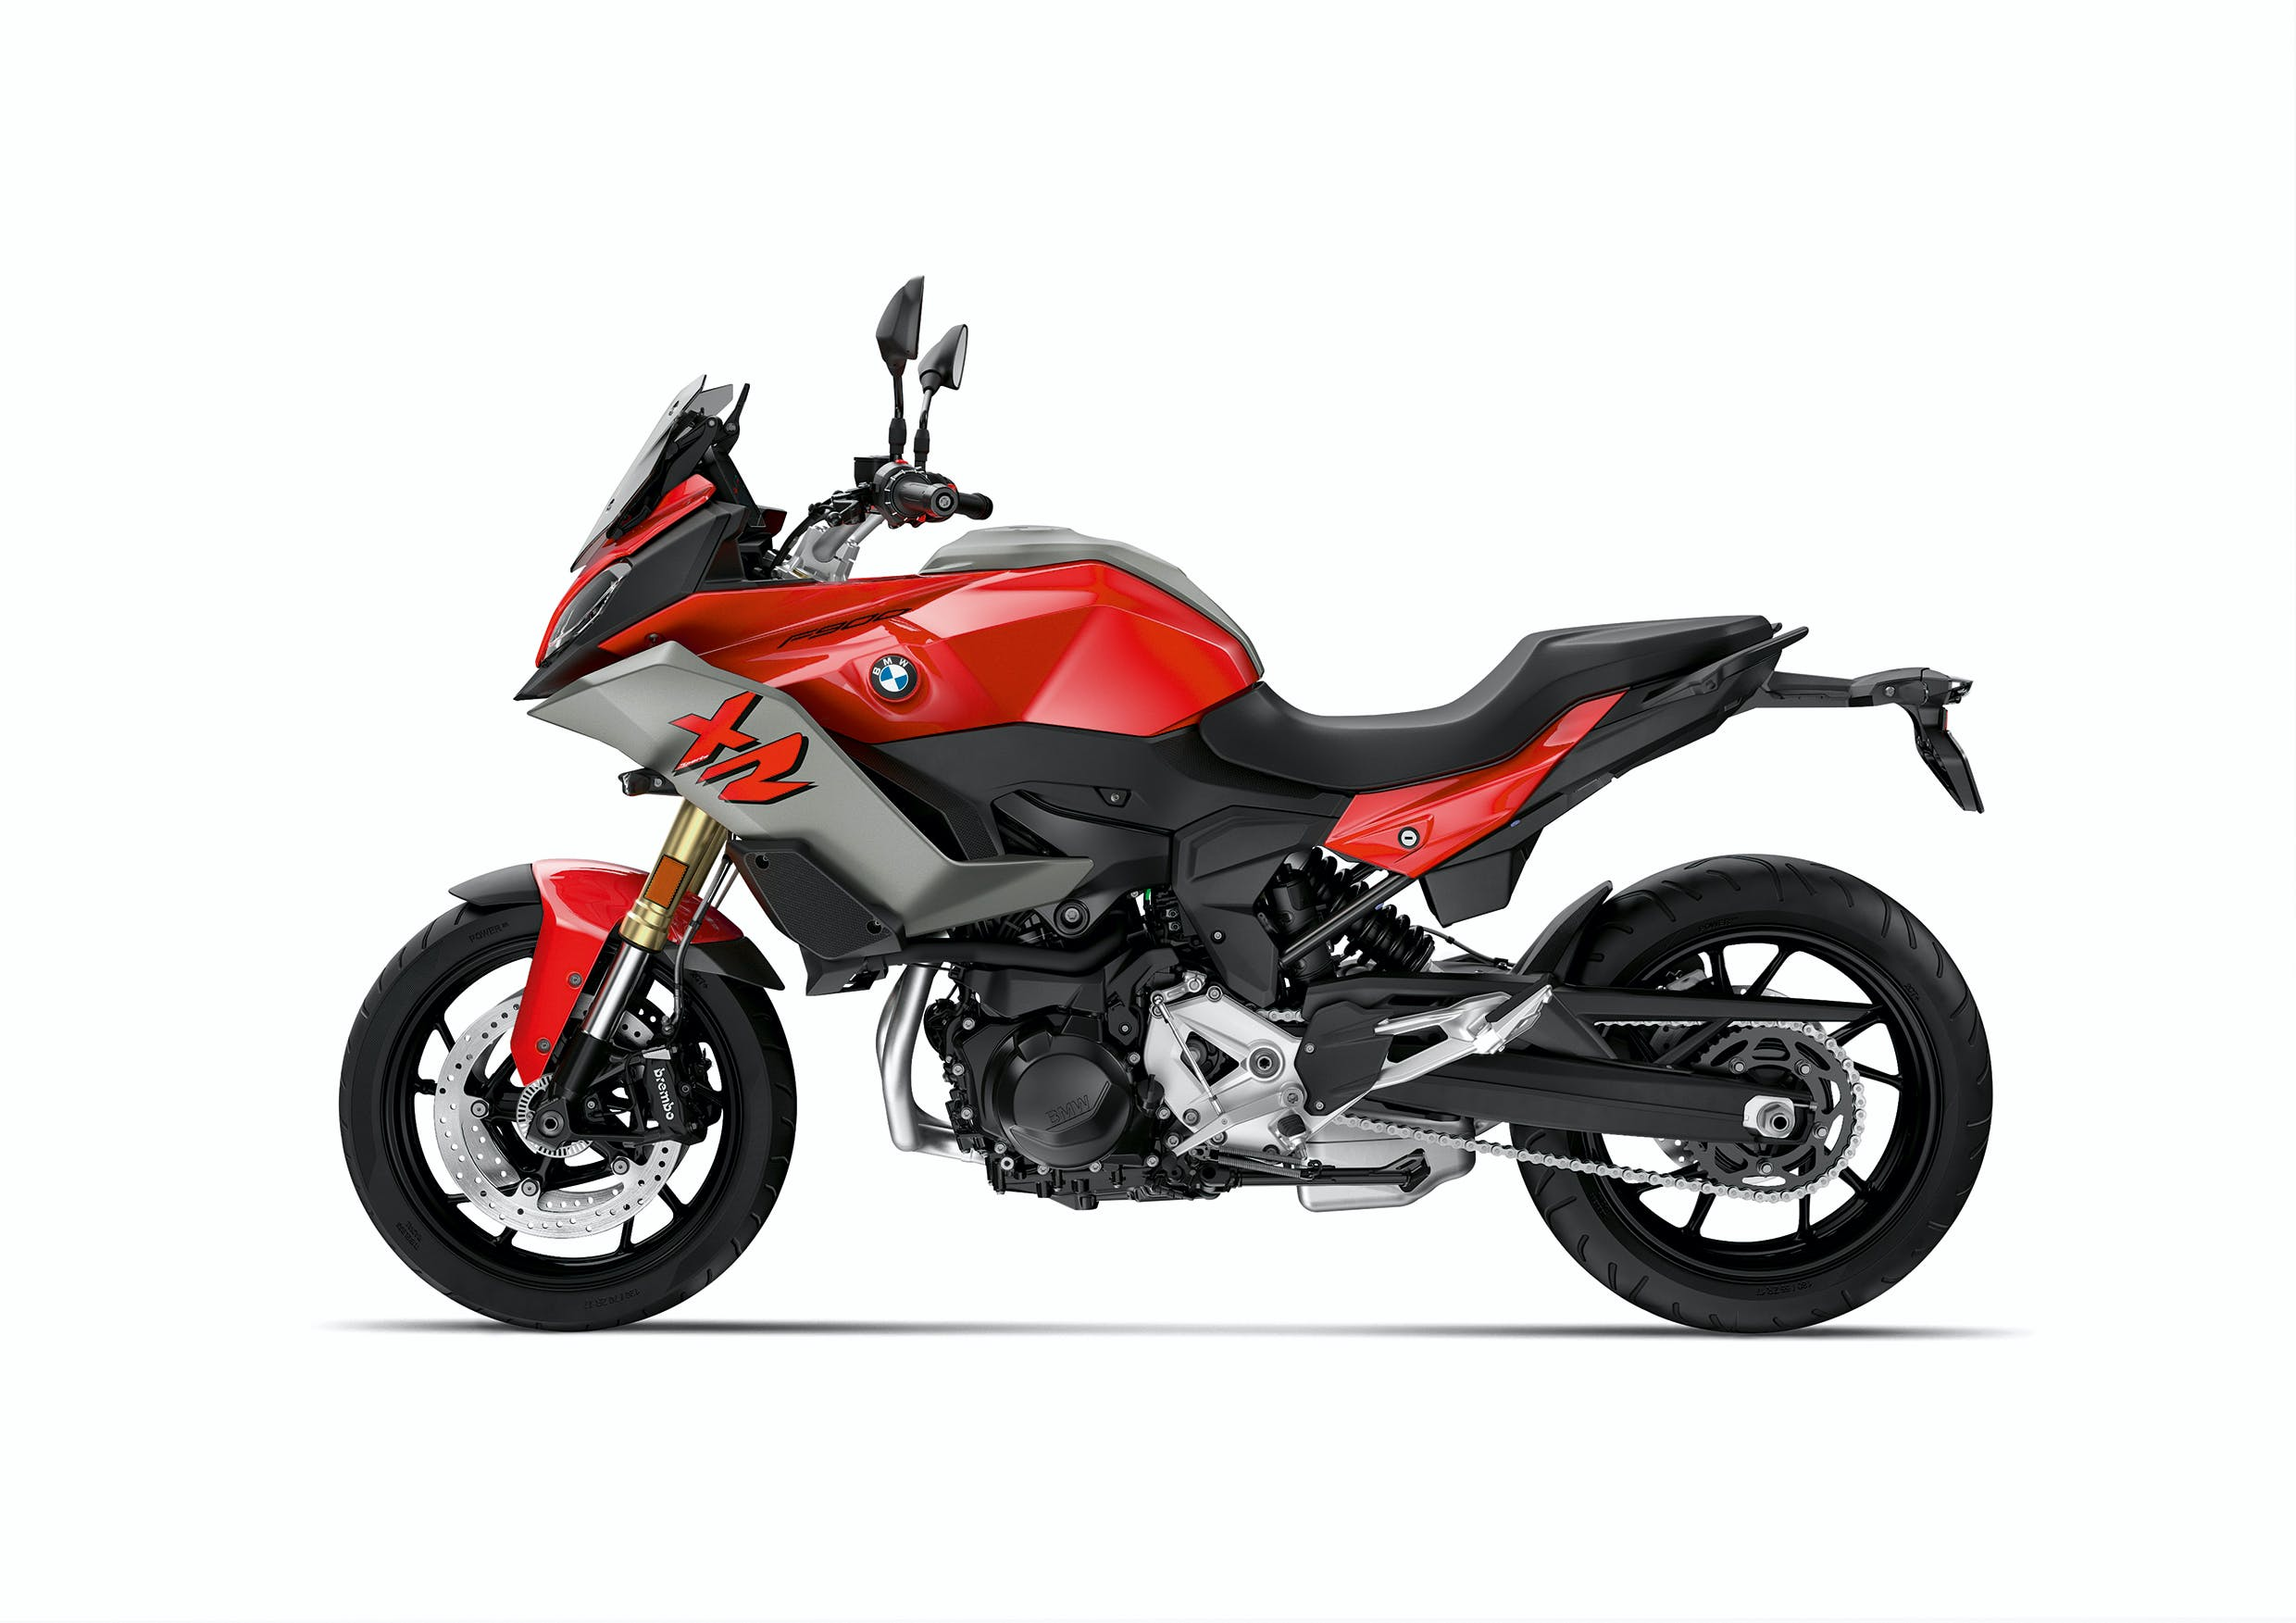 BMW F 900 XR in Sport Style - Racing Red colour